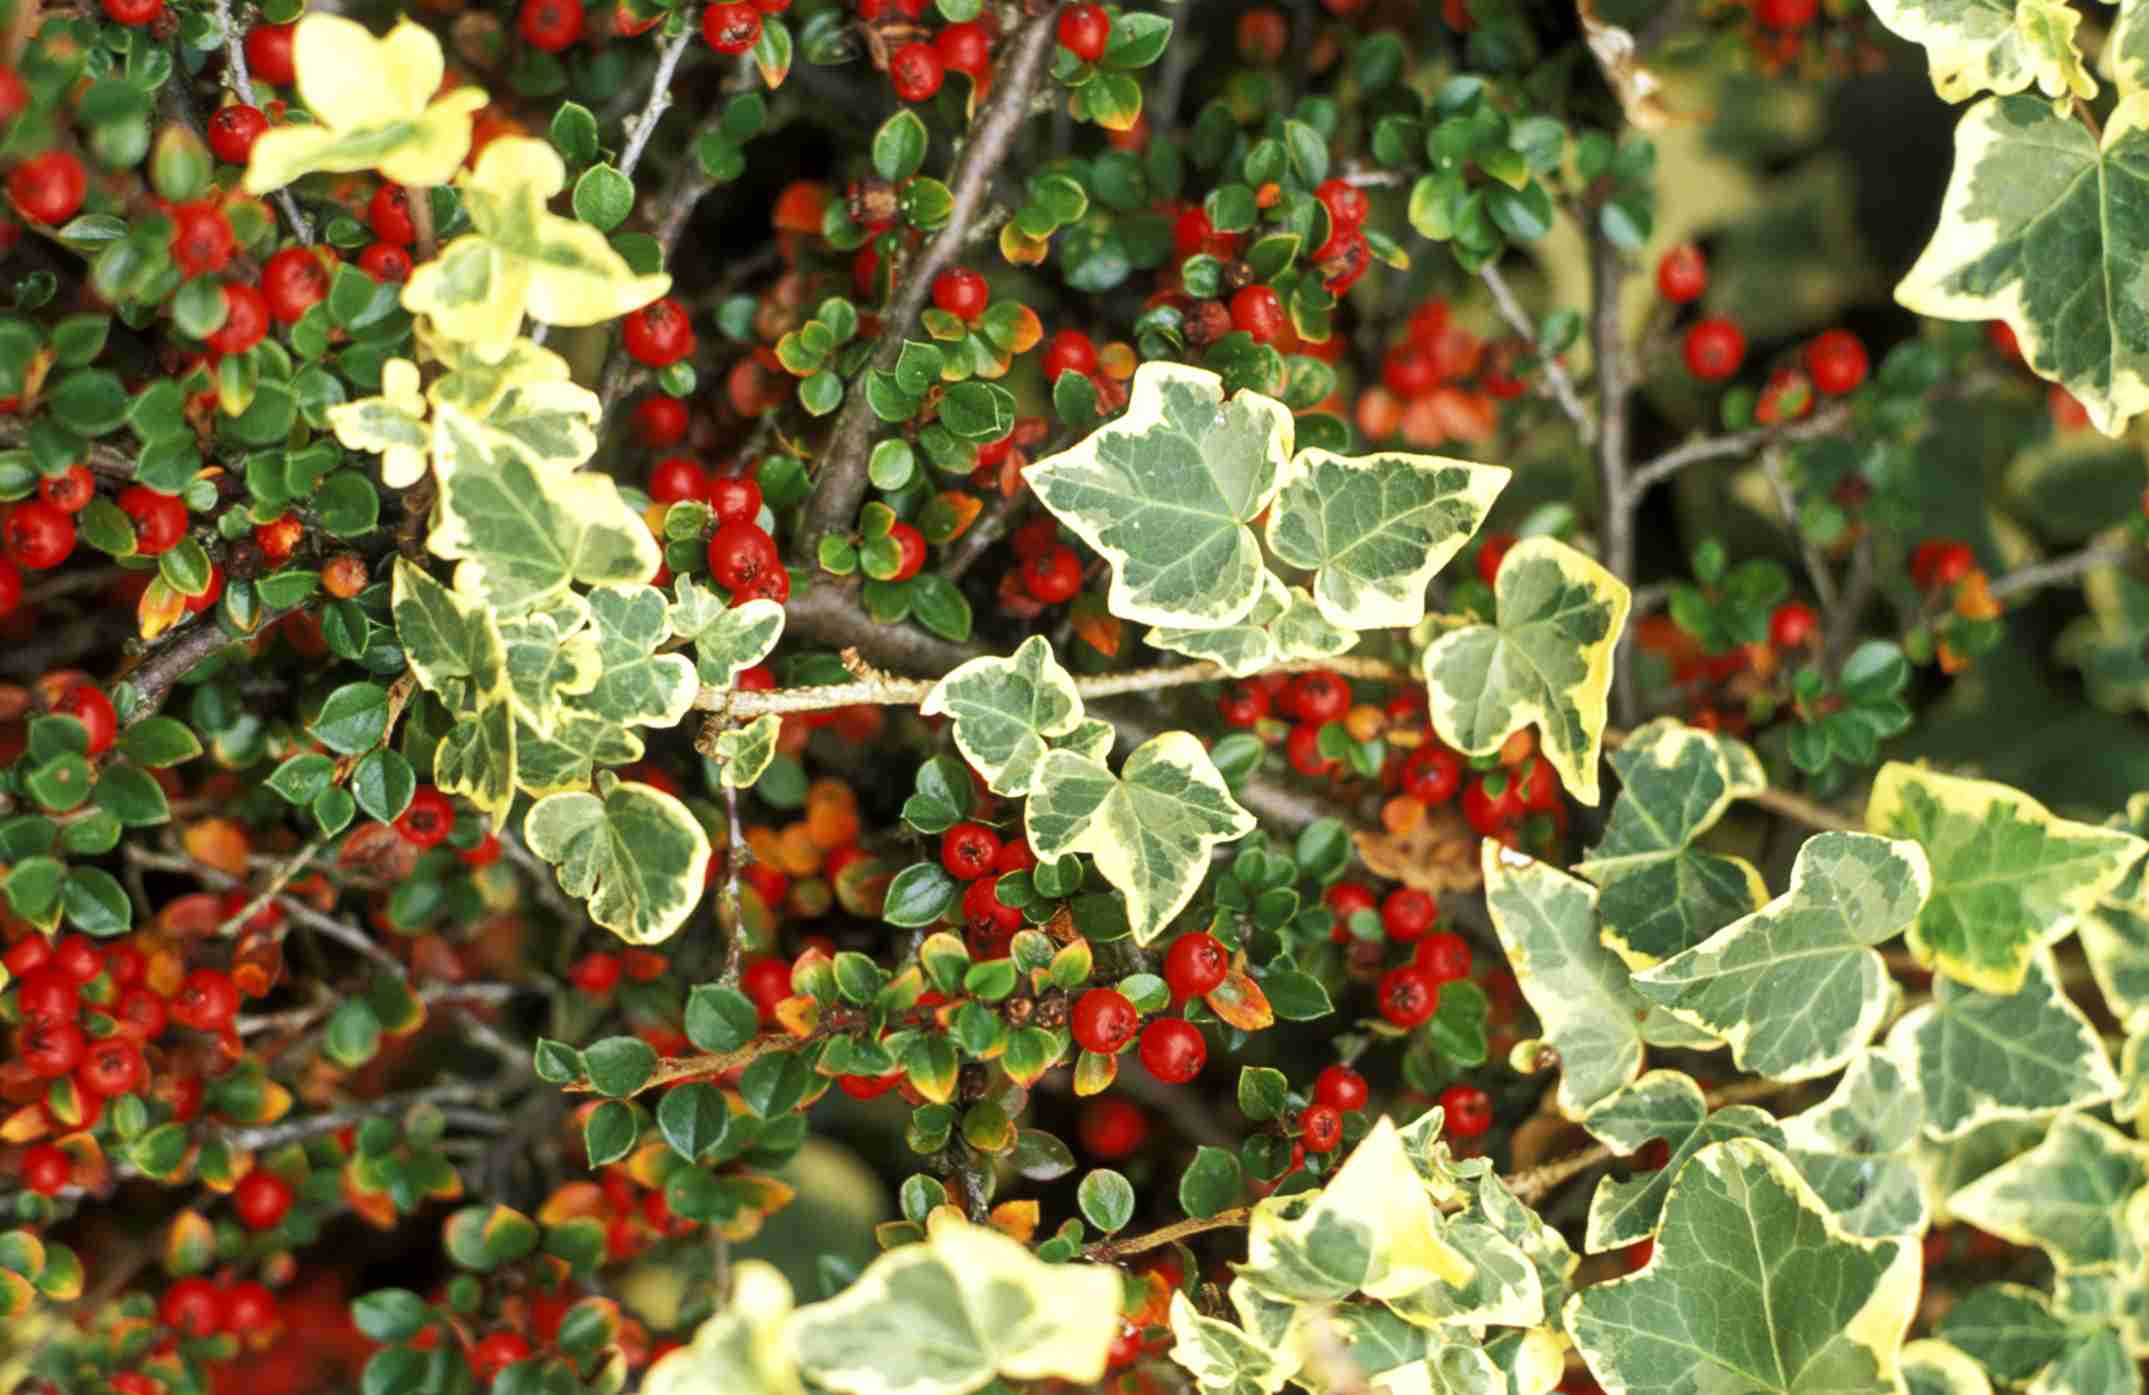 Hedera helix 'glacier' (variegated ivy) against a backdrop of cotoneaster berries.